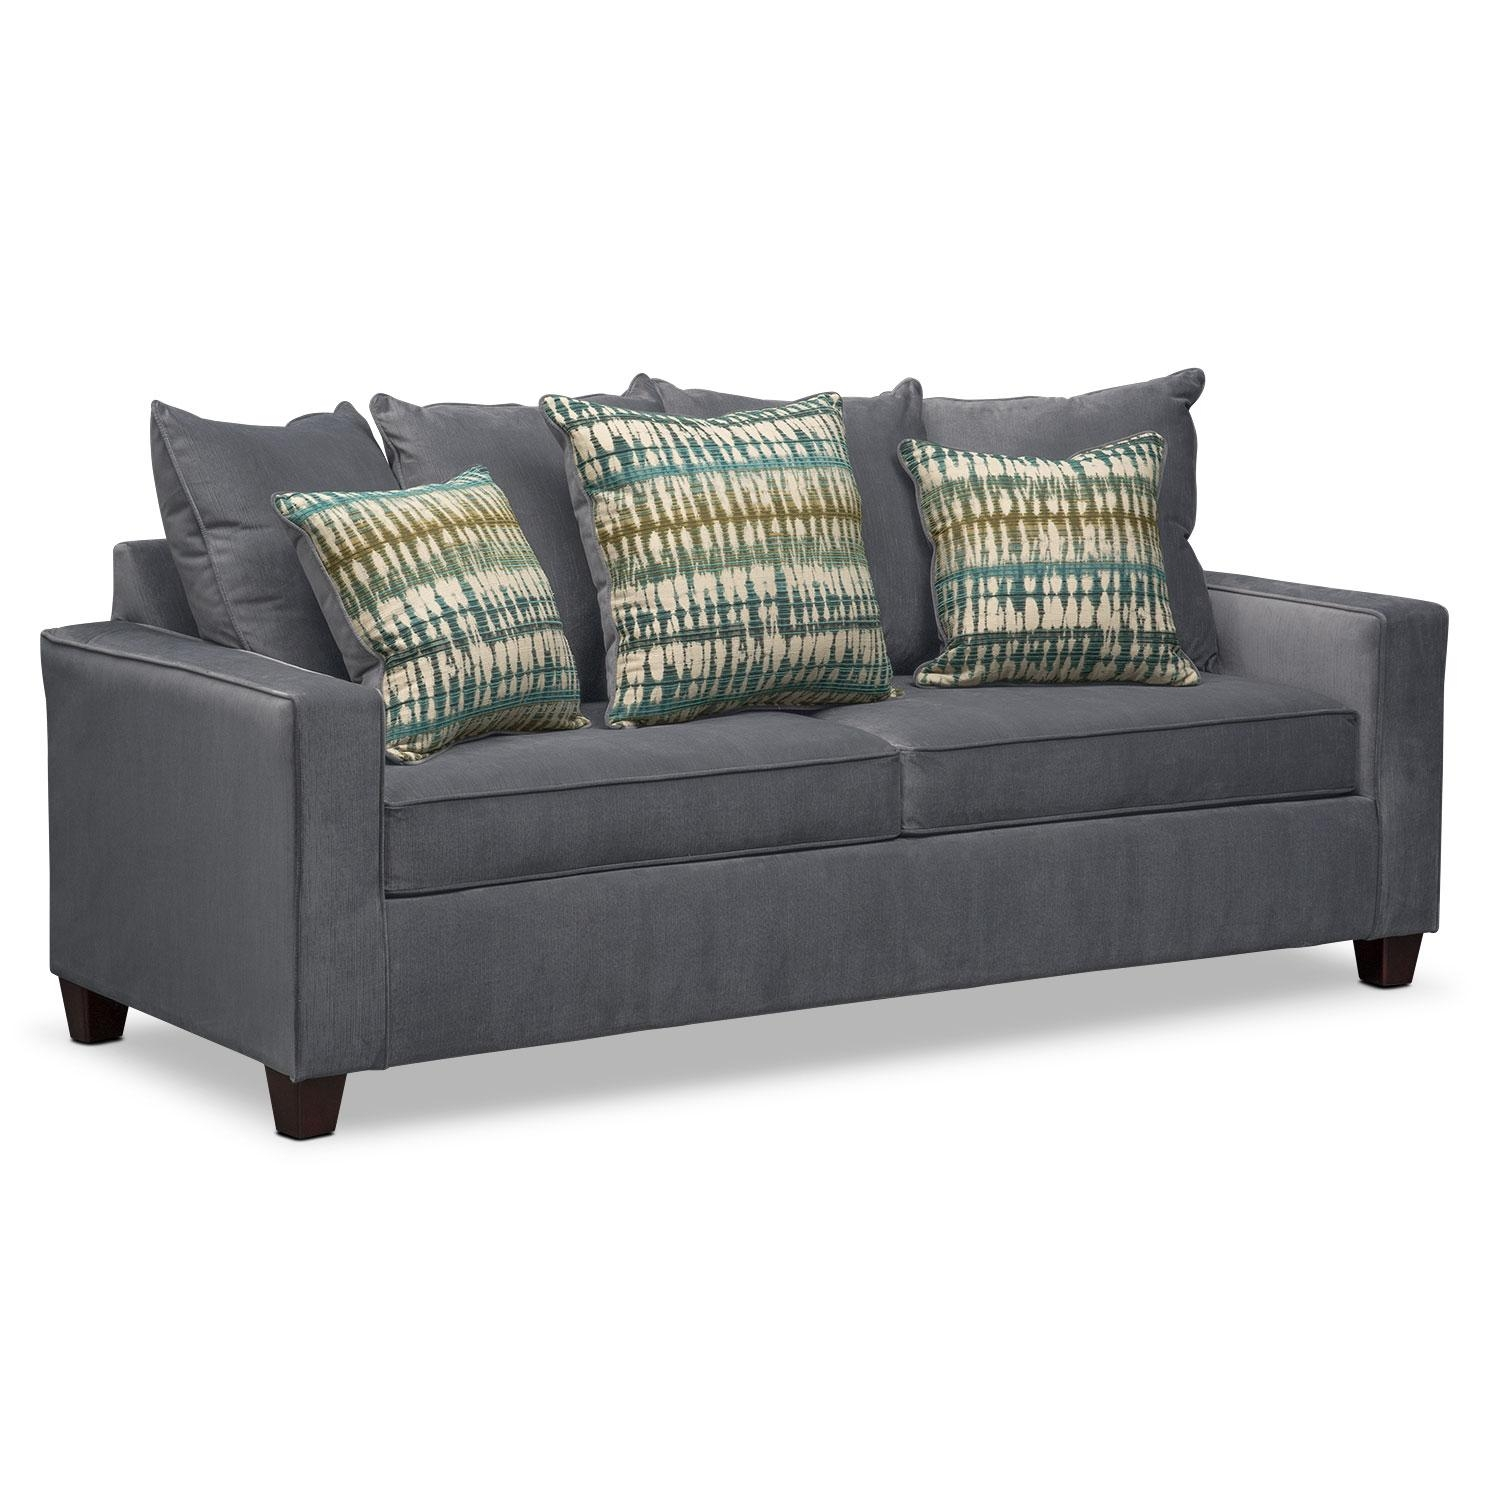 Bryden Queen Memory Foam Sleeper Sofa – Slate | Value City Furniture Within Queen Convertible Sofas (View 15 of 20)